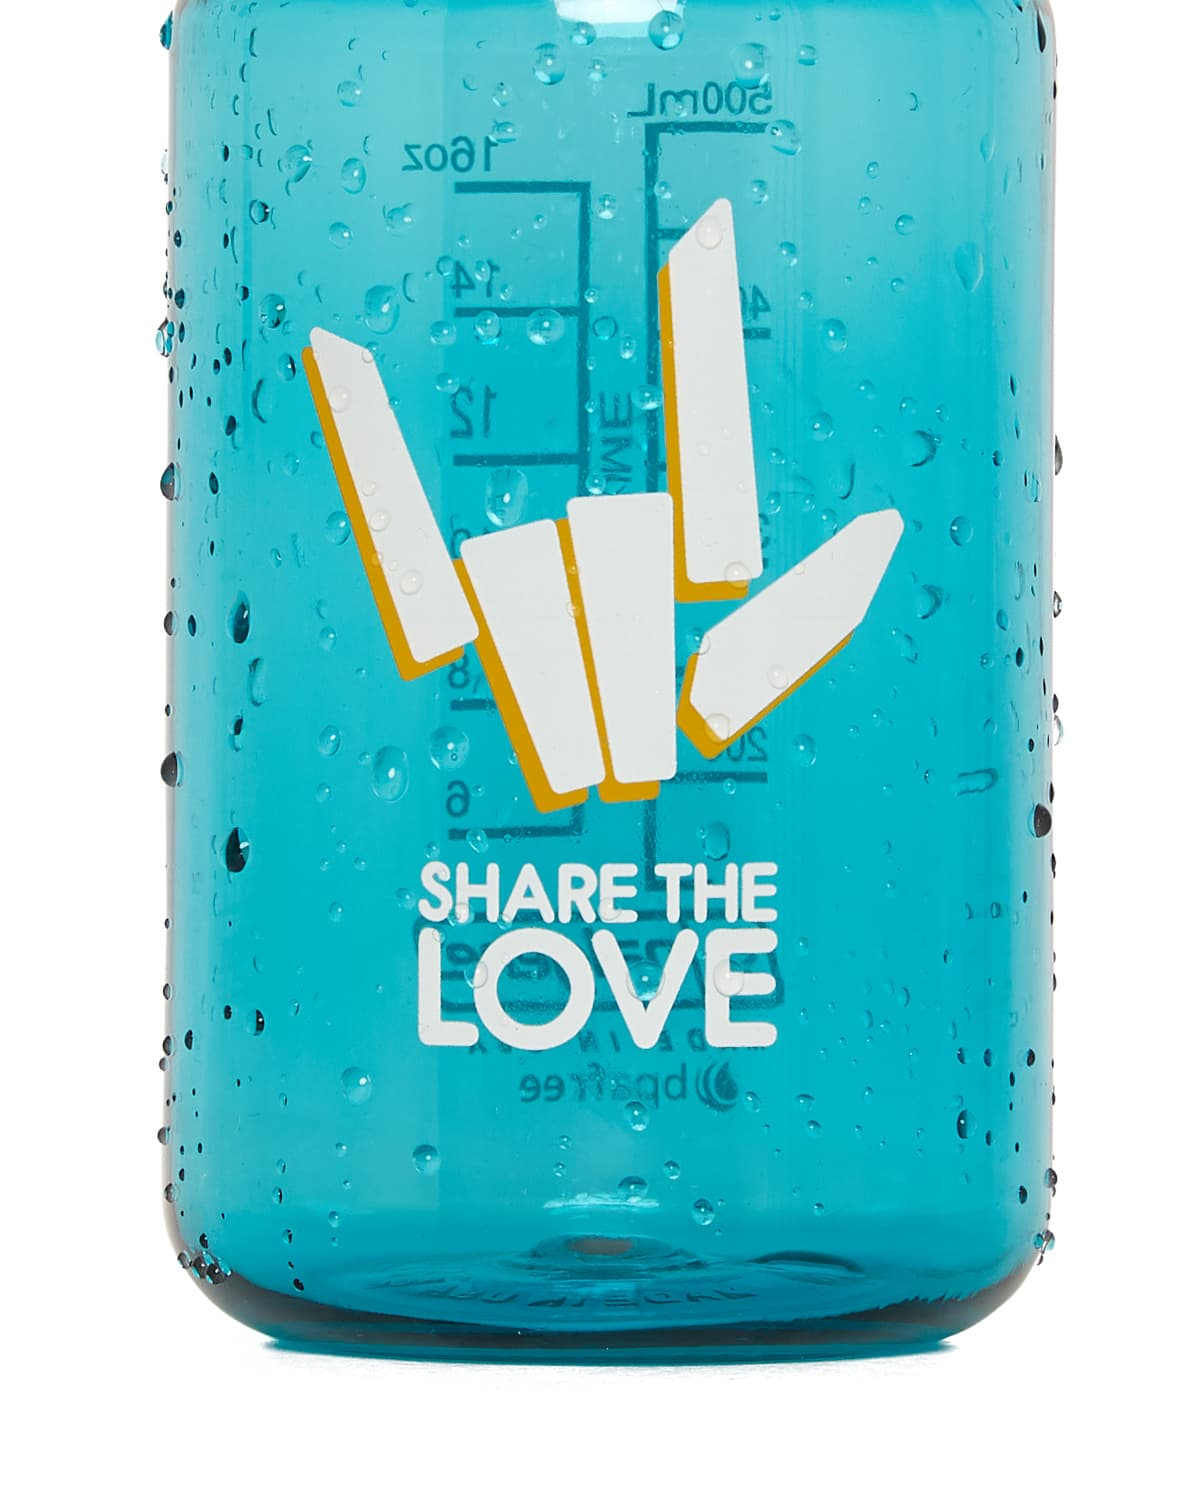 'Share The Love' 16 oz Narrow Mouth Nalgene